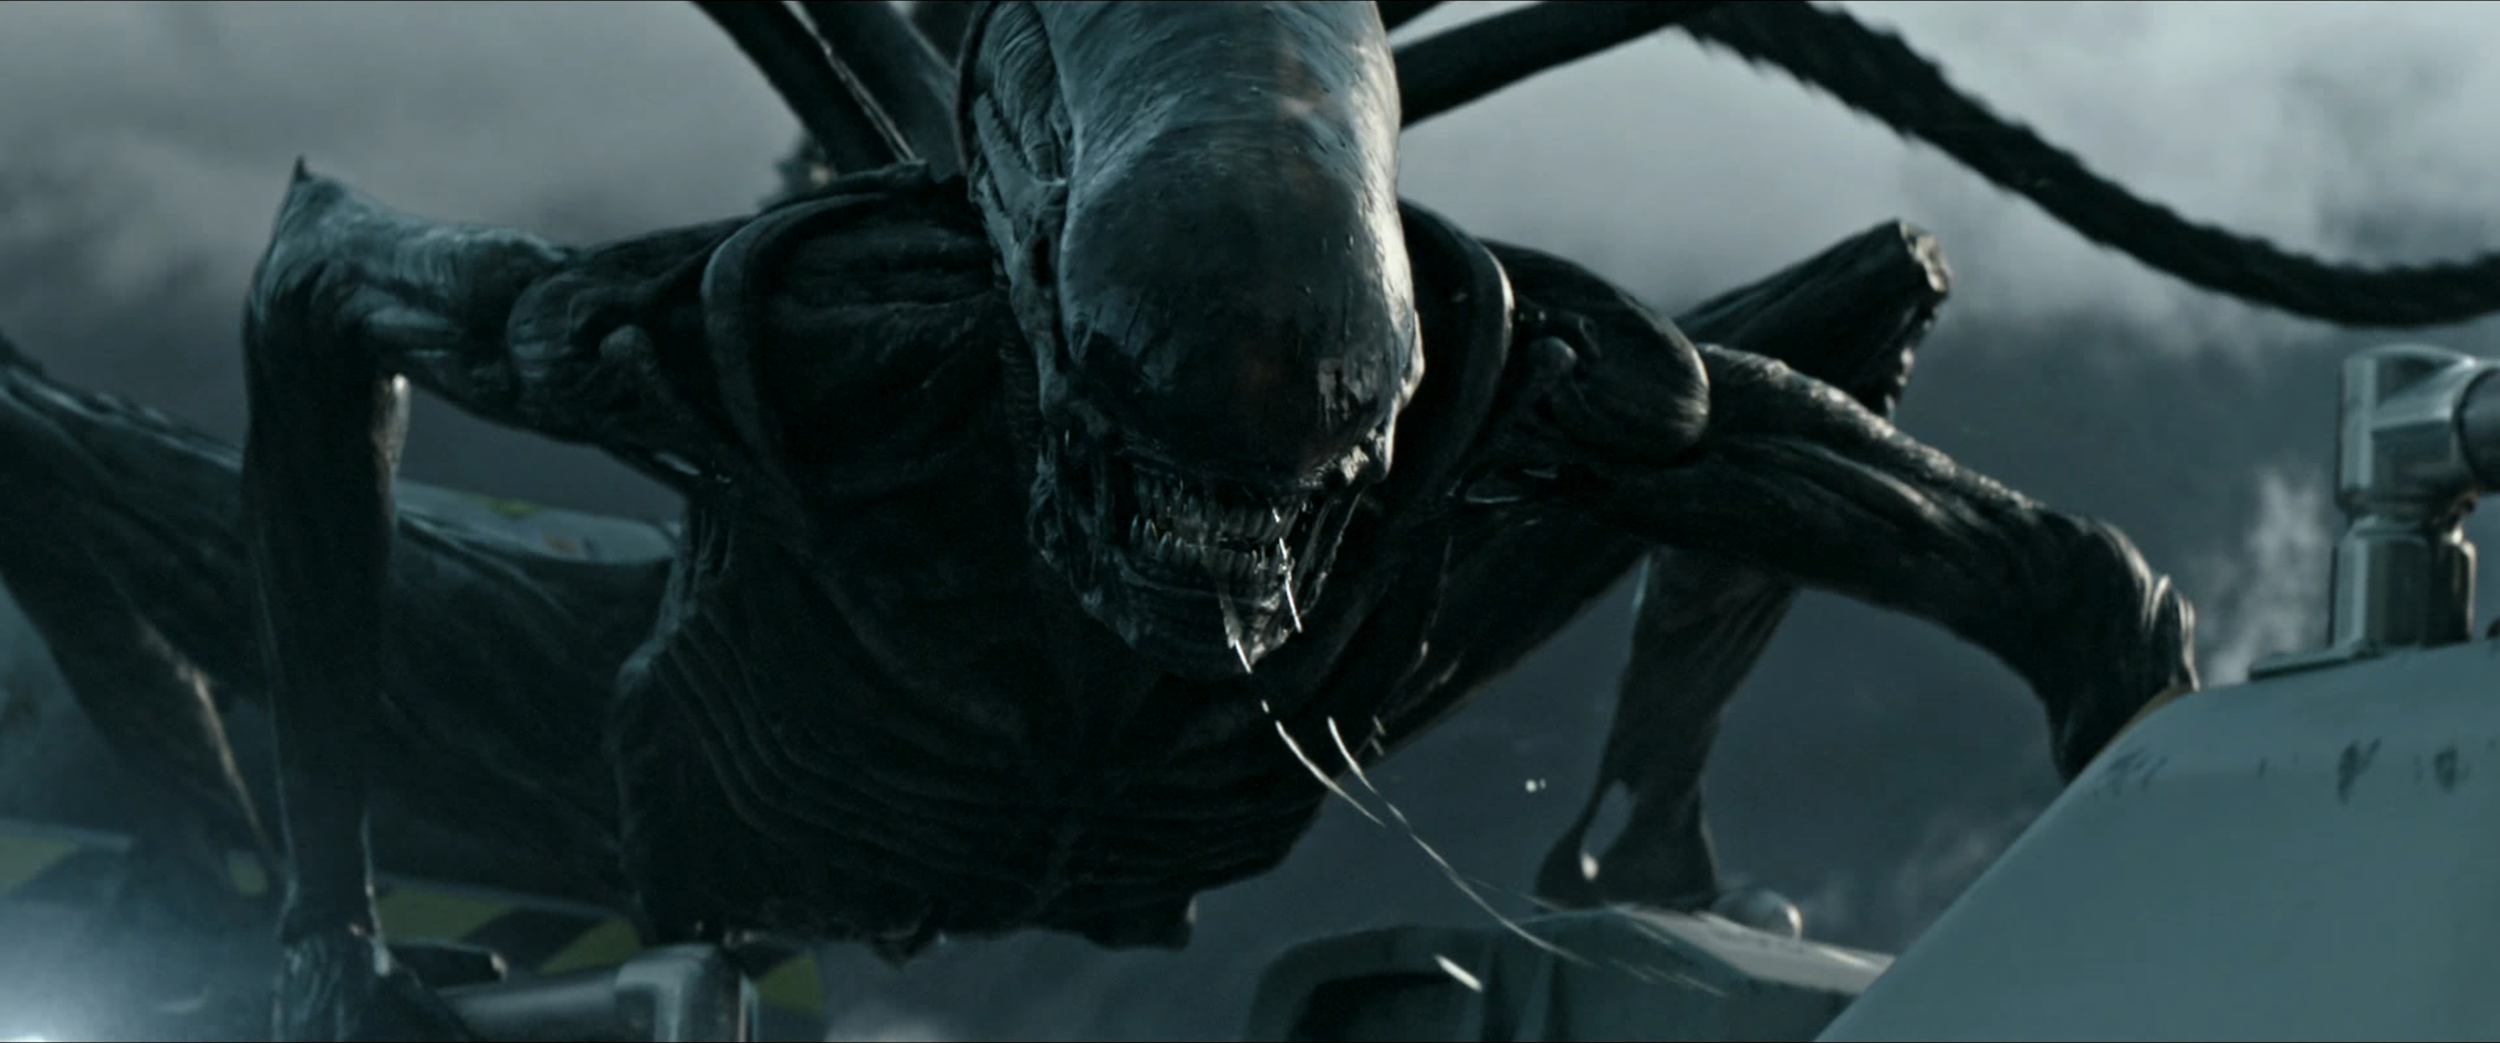 covenant-pic-2.png